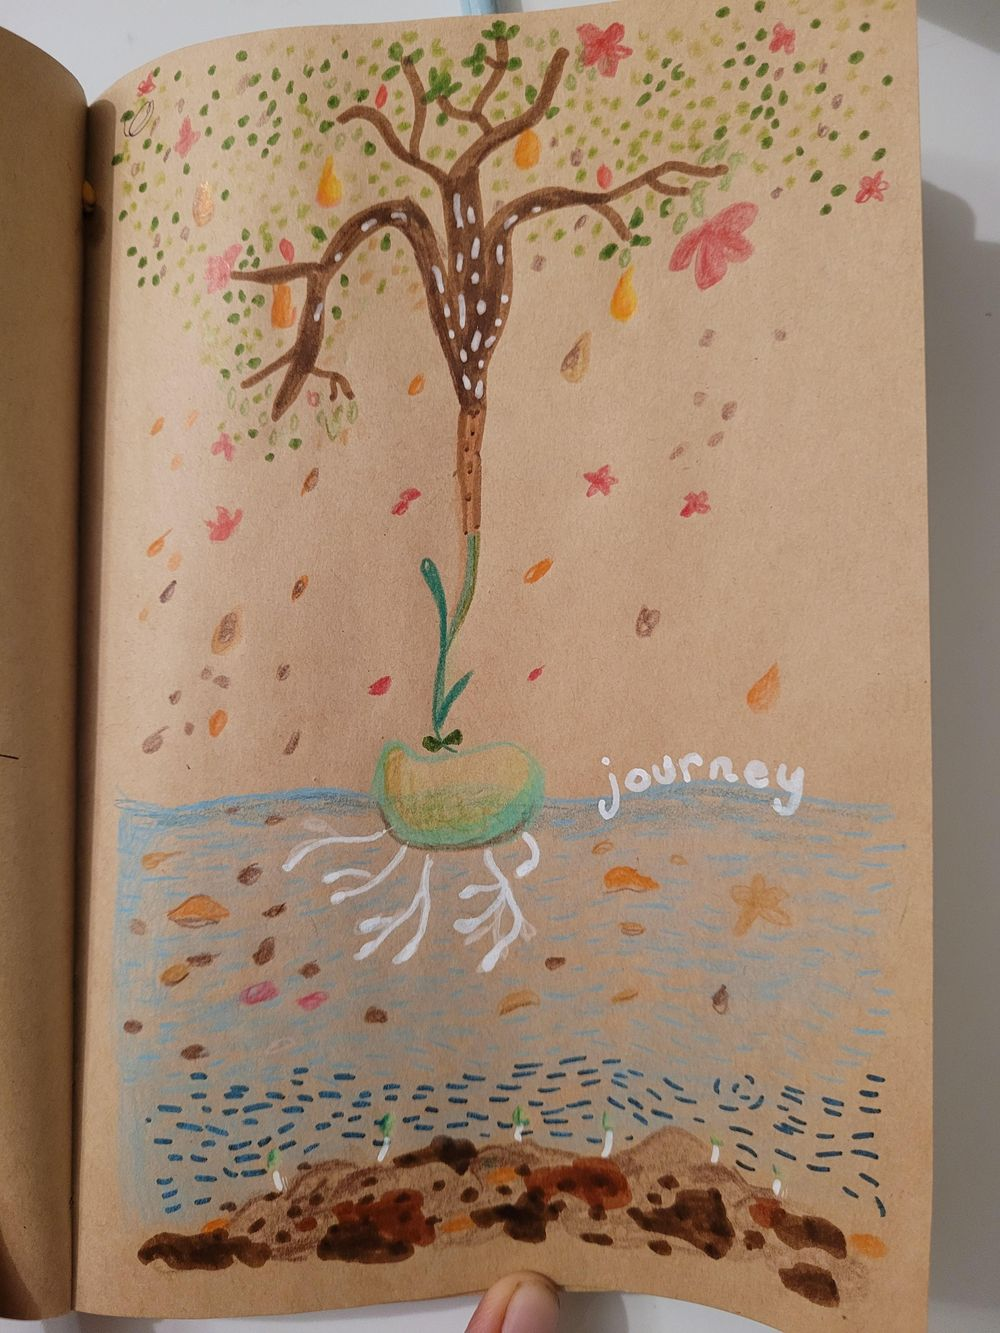 Journey - image 1 - student project